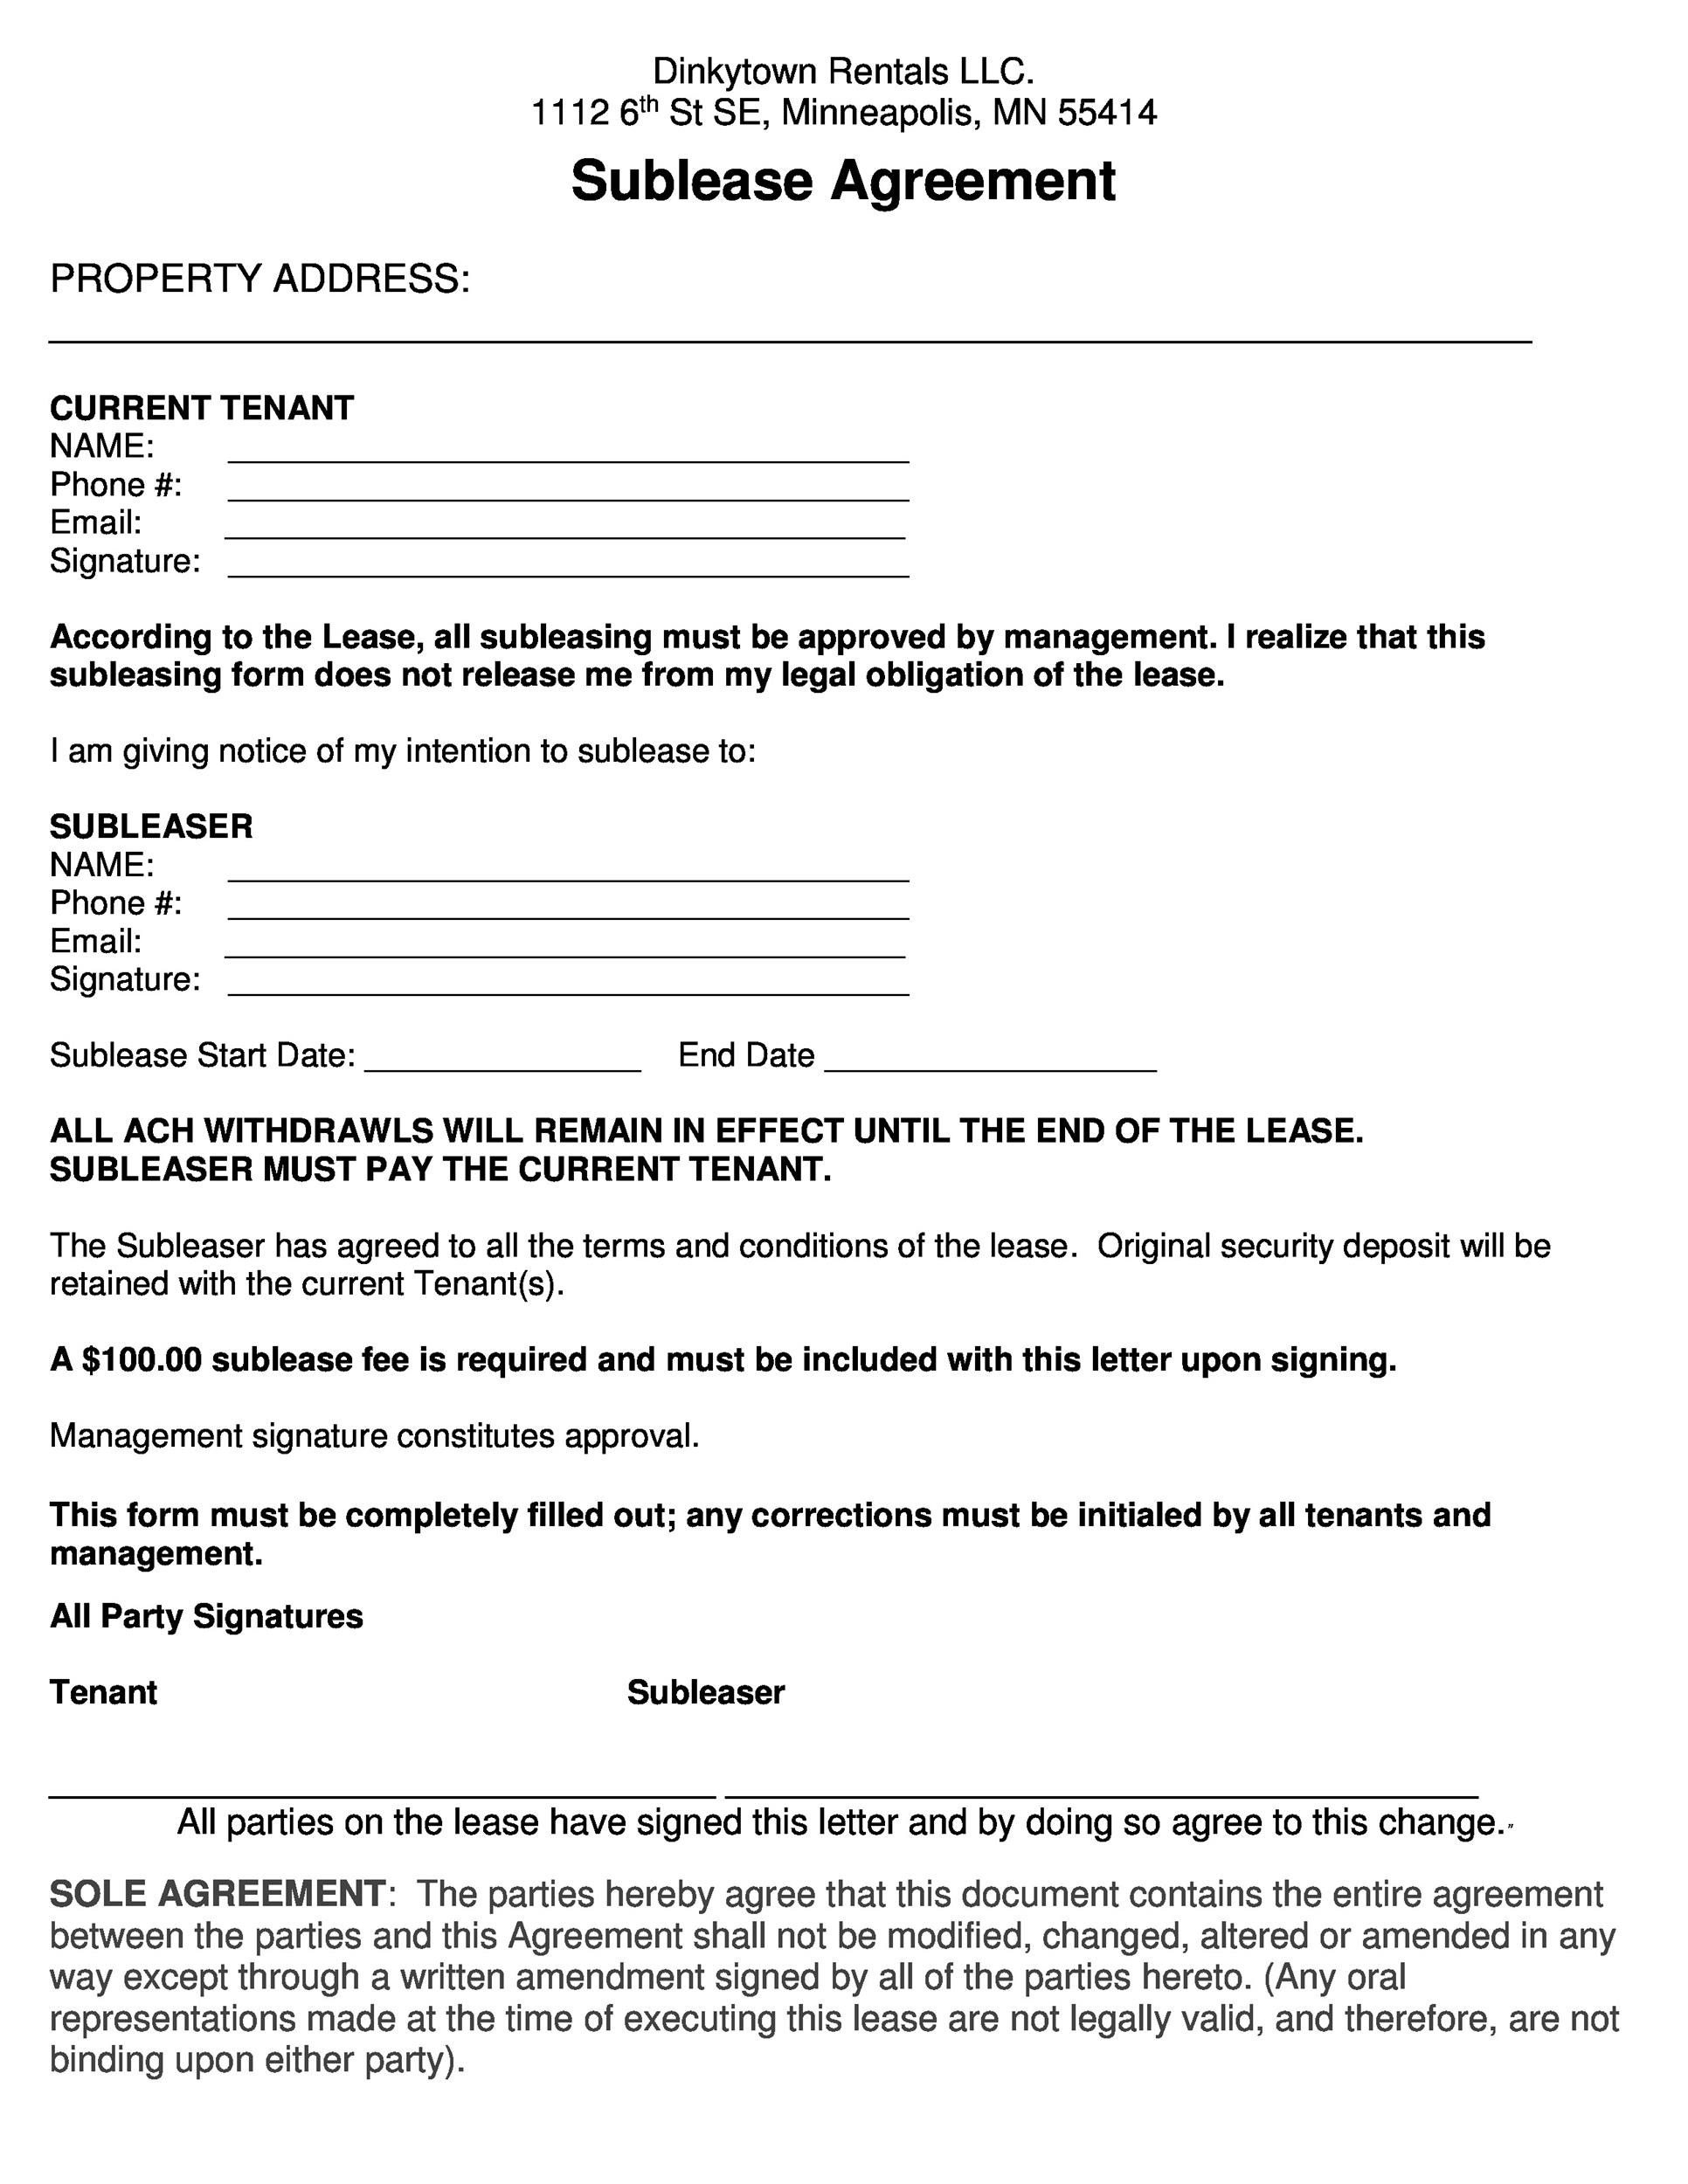 Sublease Agreements